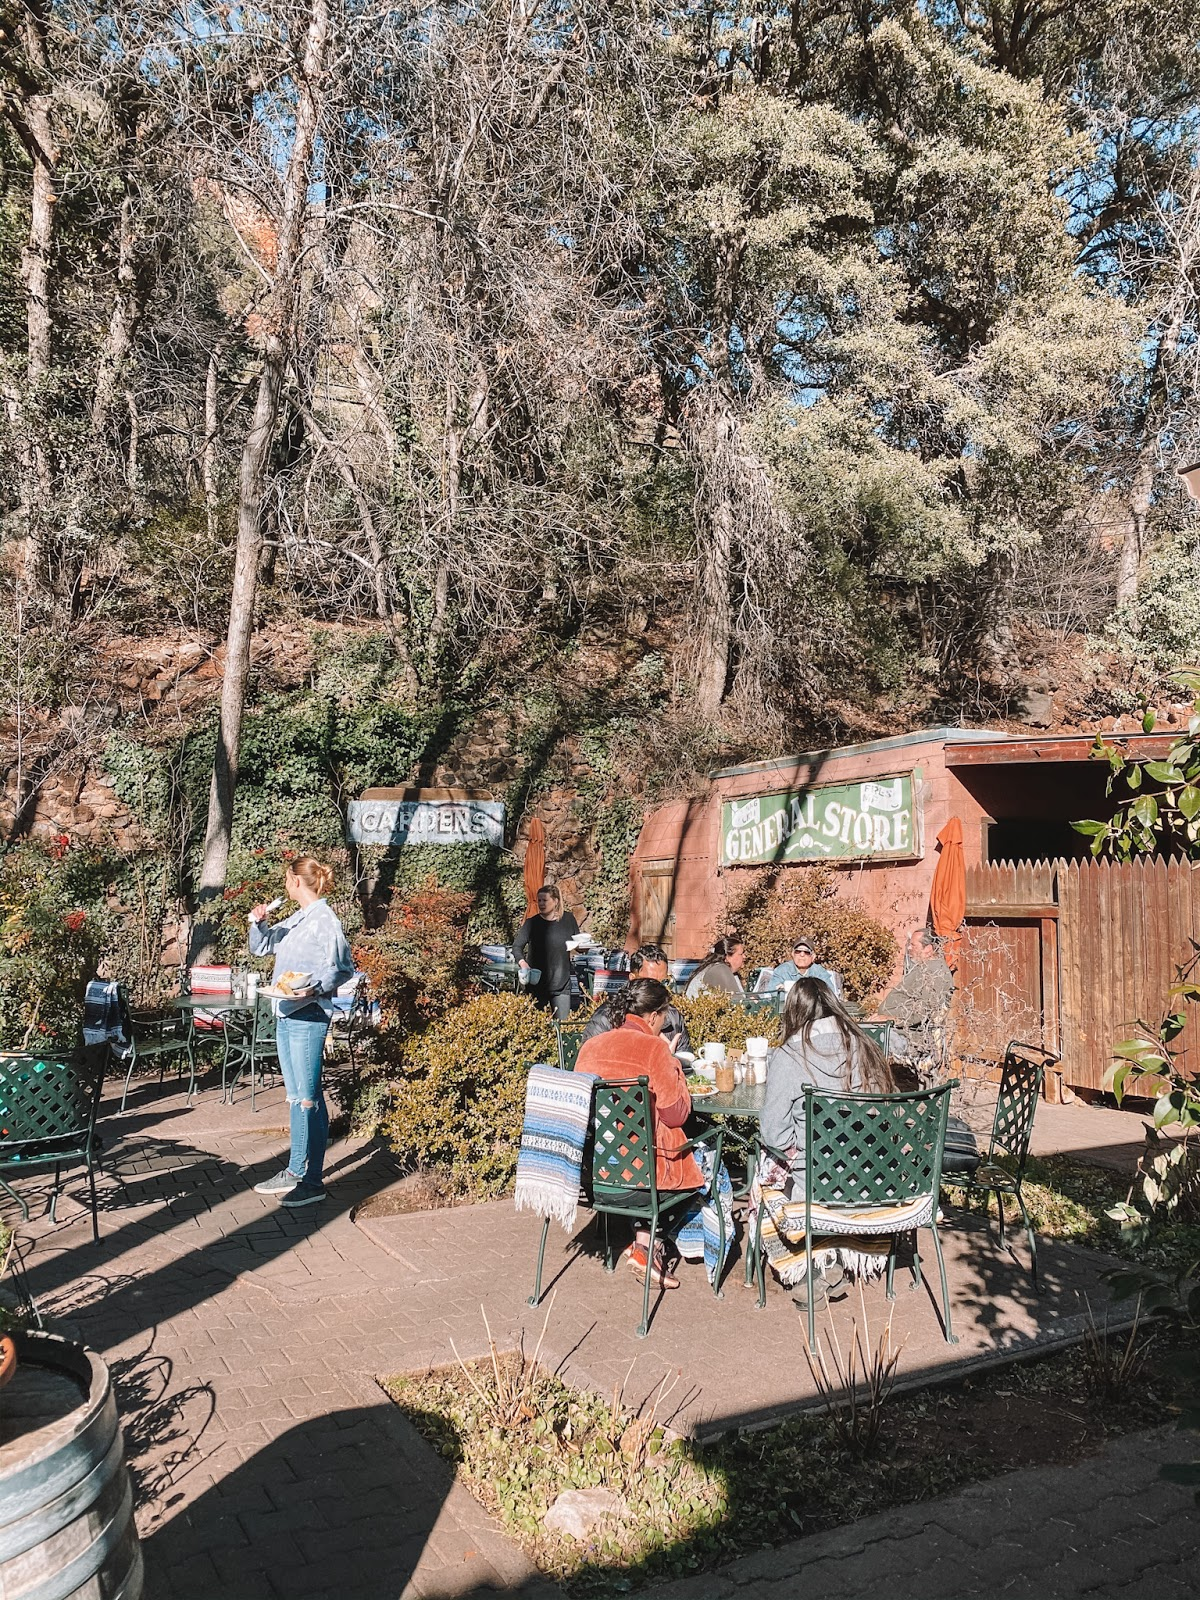 The Gardens at Indian Gardens Cafe in Sedona make for the perfect patio seating